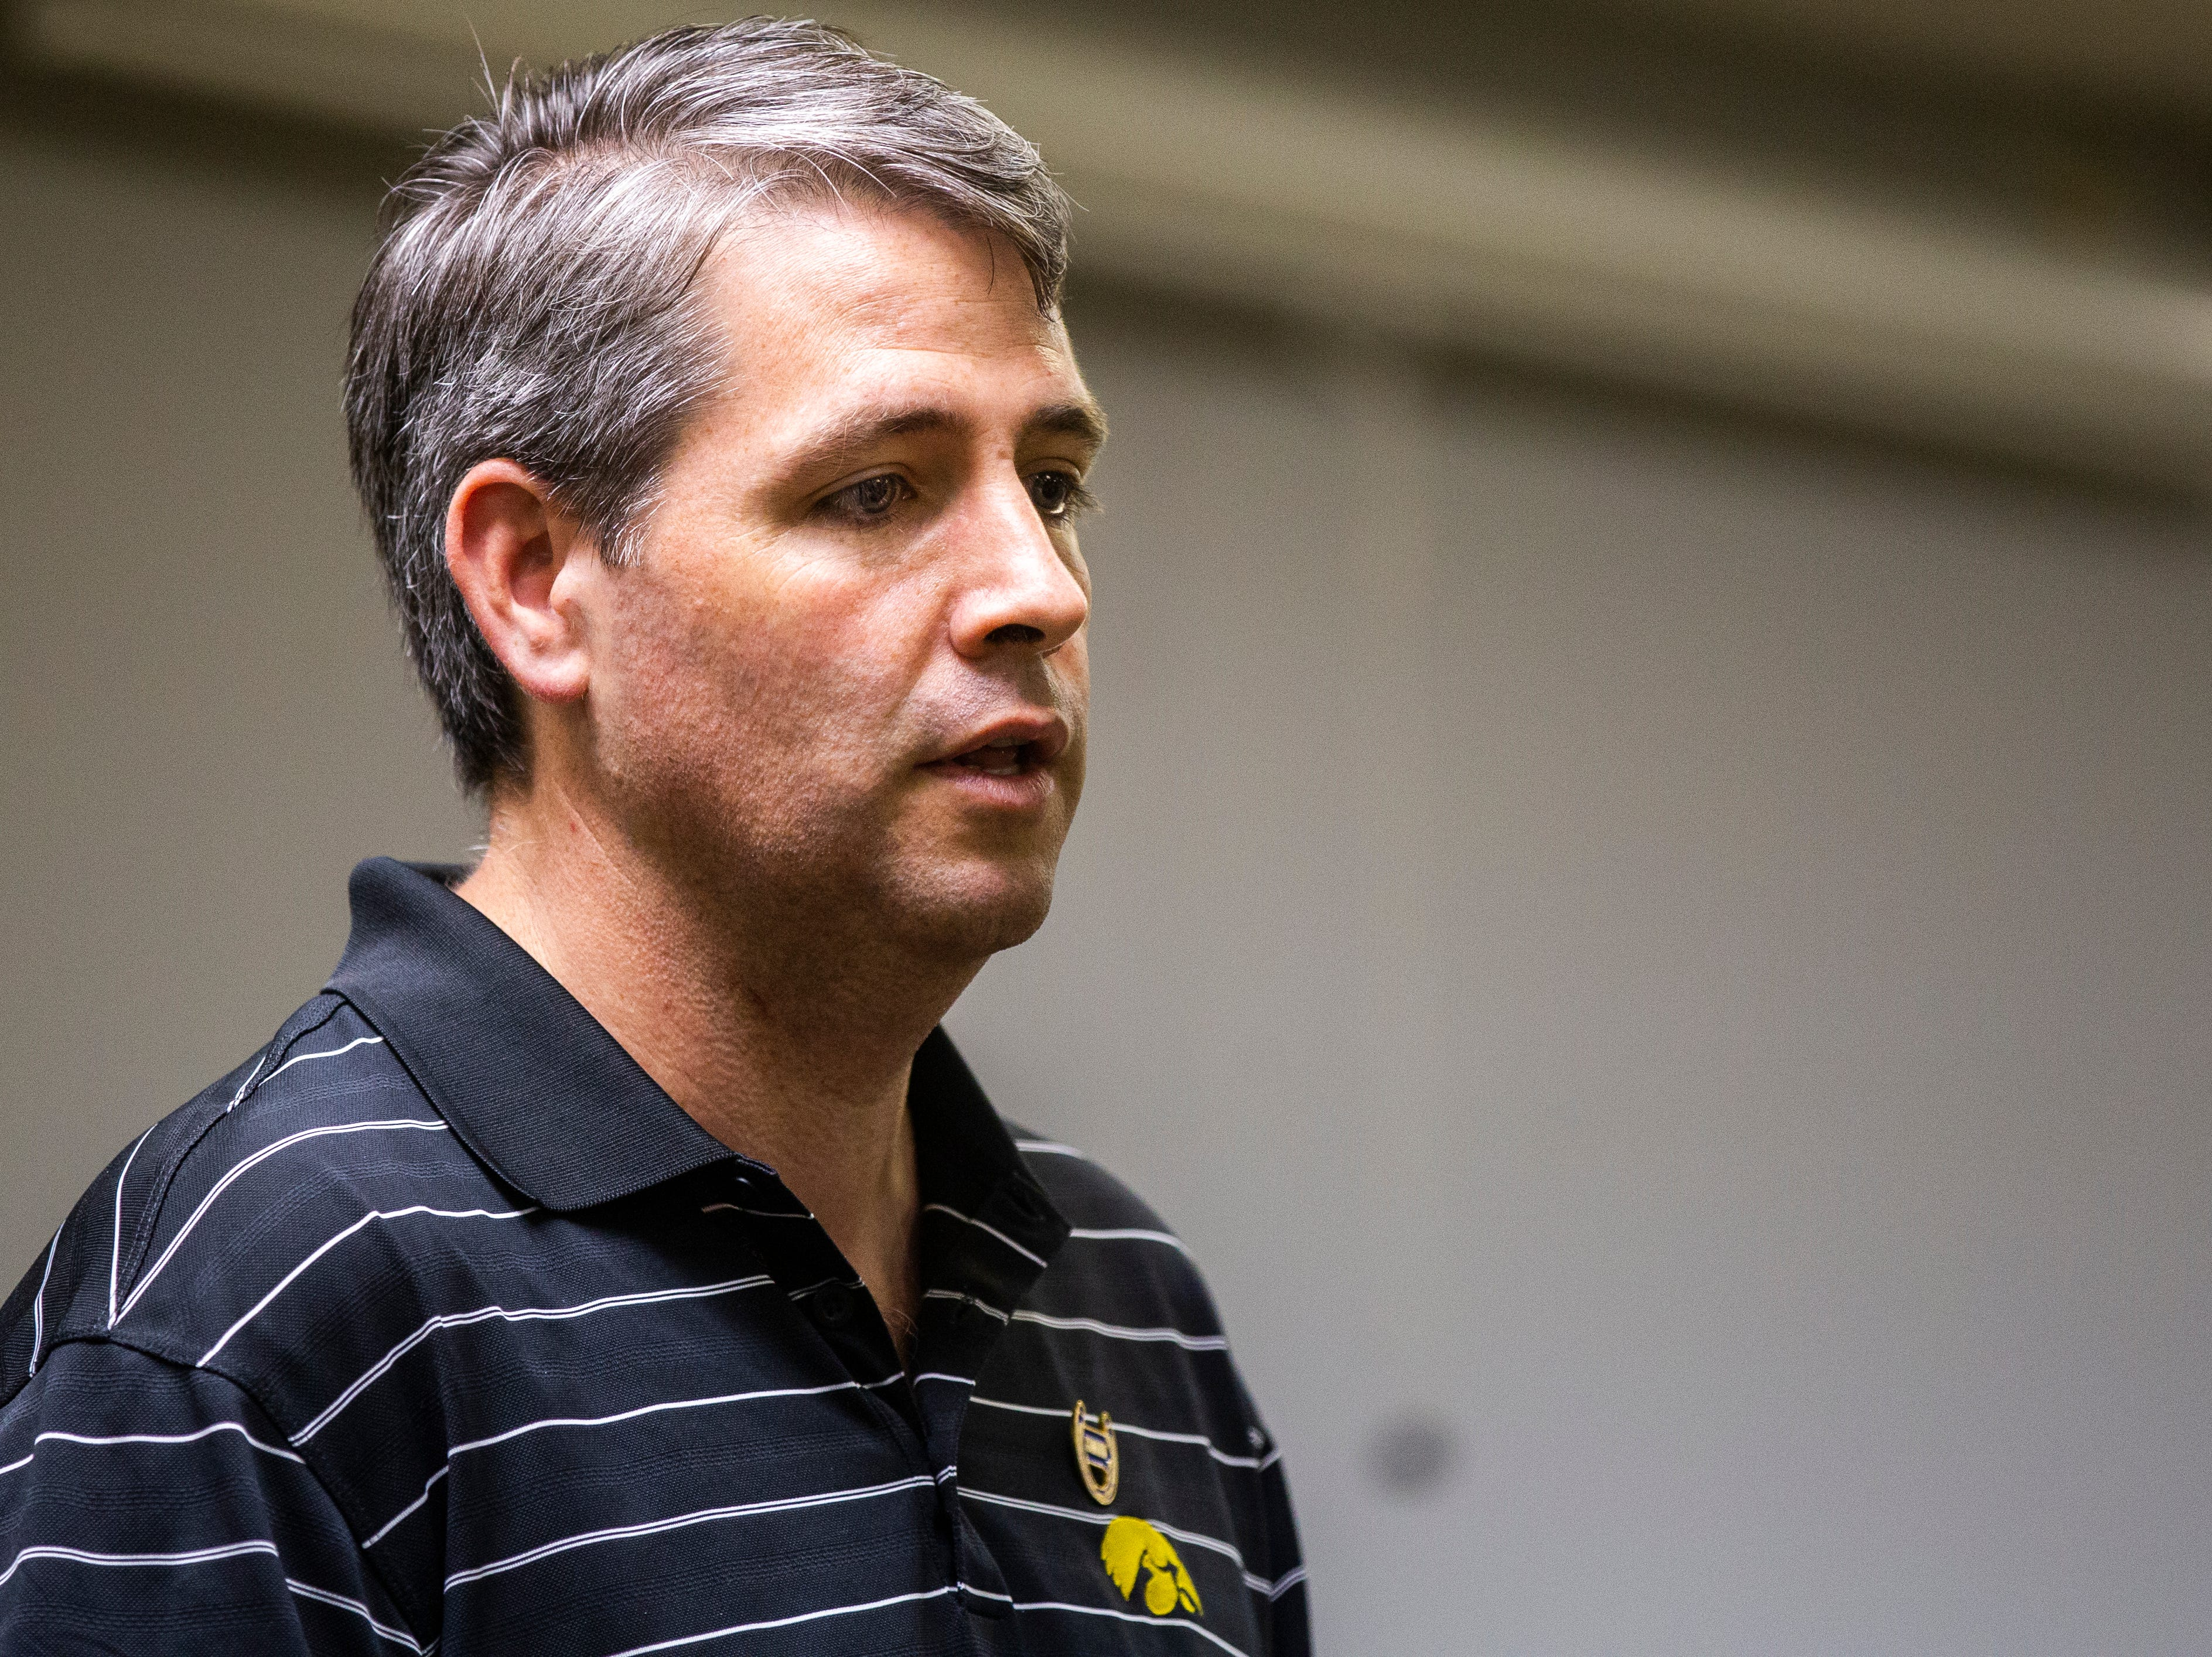 Tim Gannon, Democratic candidate for Iowa secretary of agriculture, speaks during an event on Wednesday, Sept. 26, 2018, at the Iowa Memorial Union on the University of Iowa campus in Iowa City.